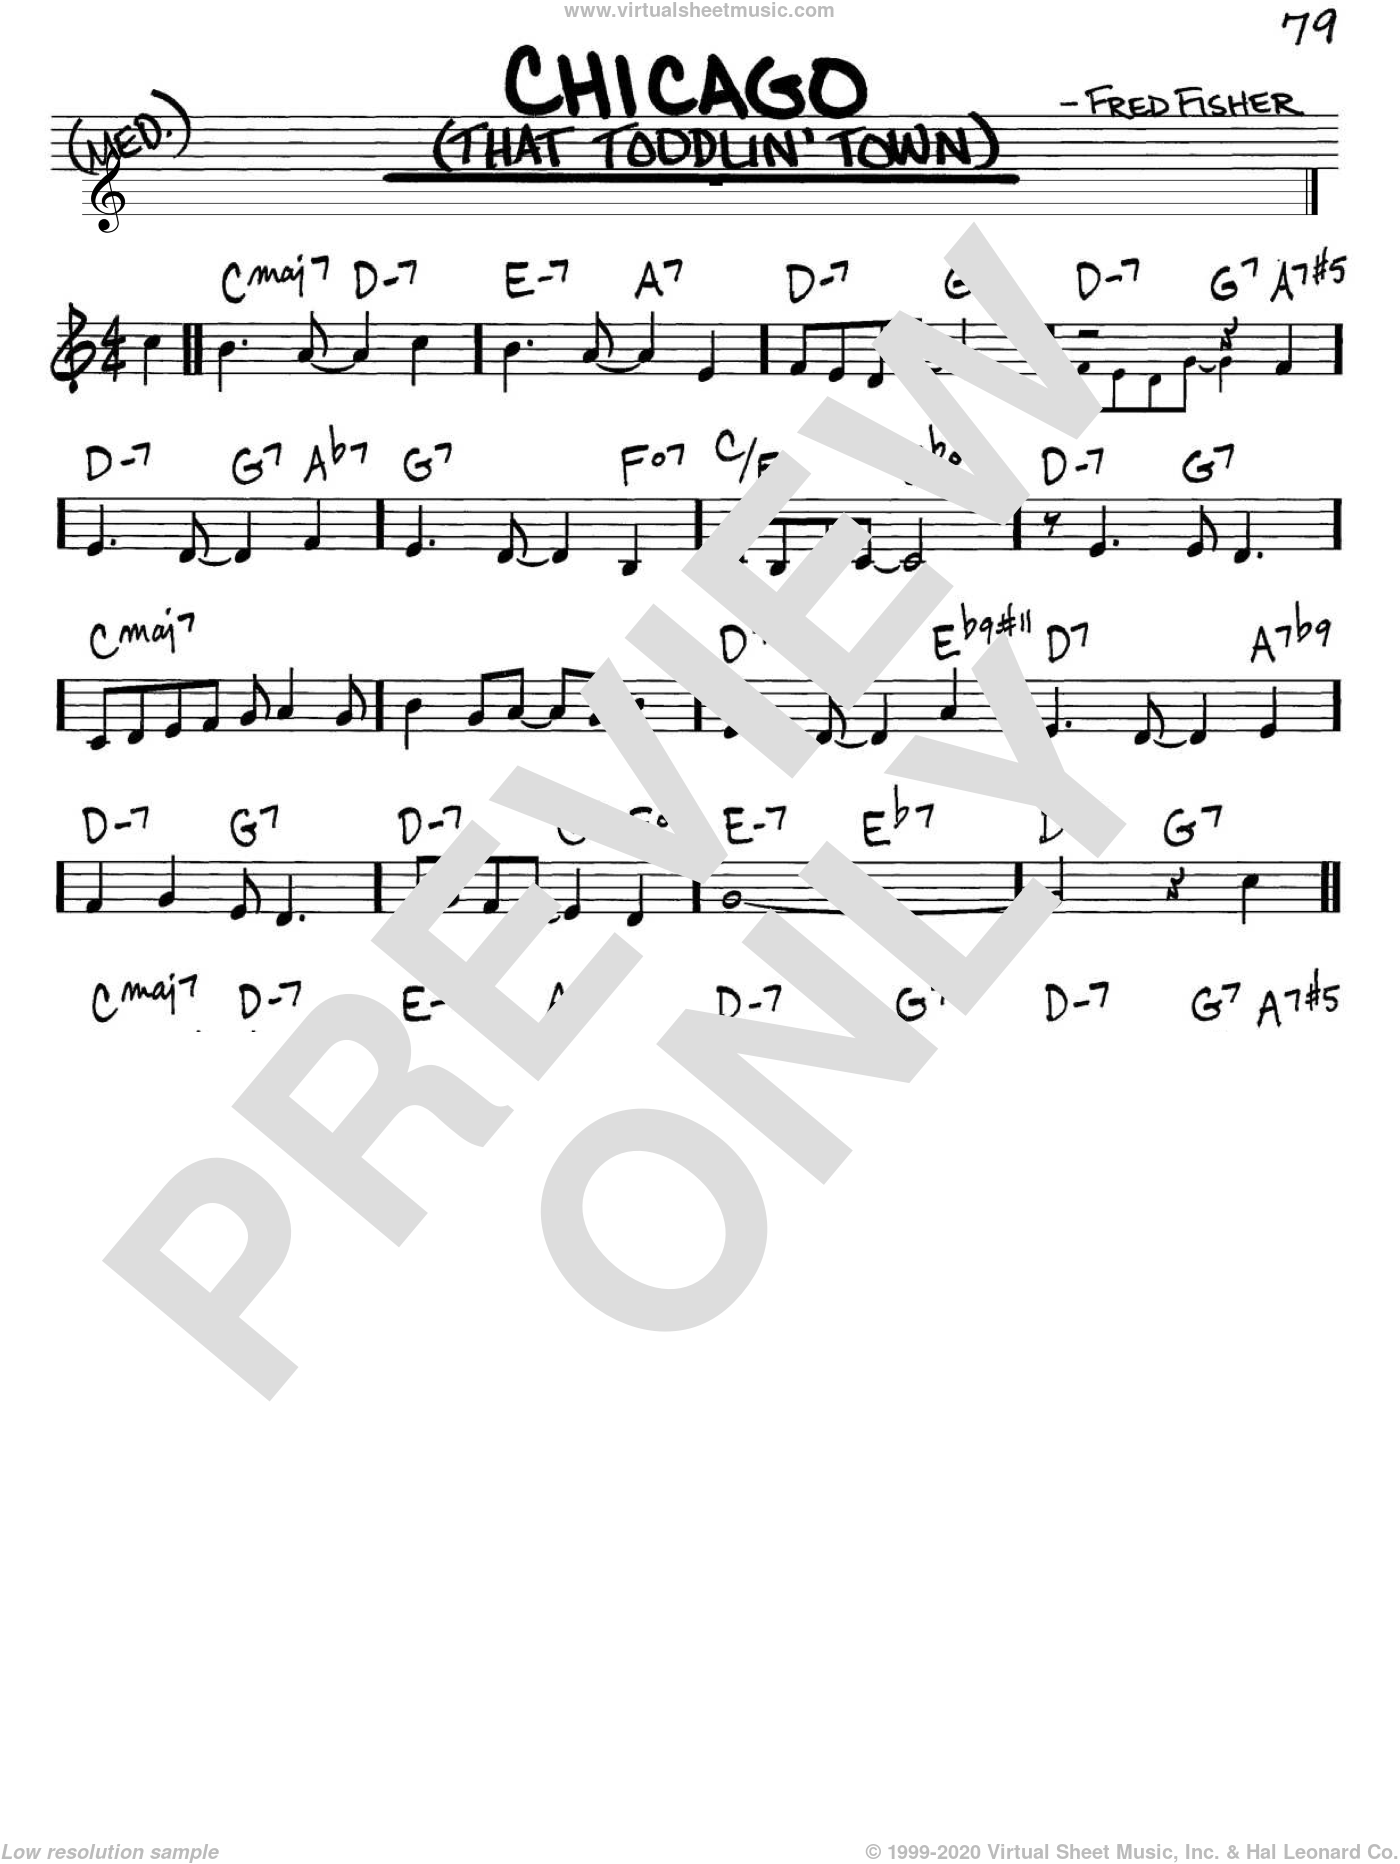 Chicago (That Toddlin' Town) sheet music for voice and other instruments (C) by Fred Fisher and Frank Sinatra. Score Image Preview.